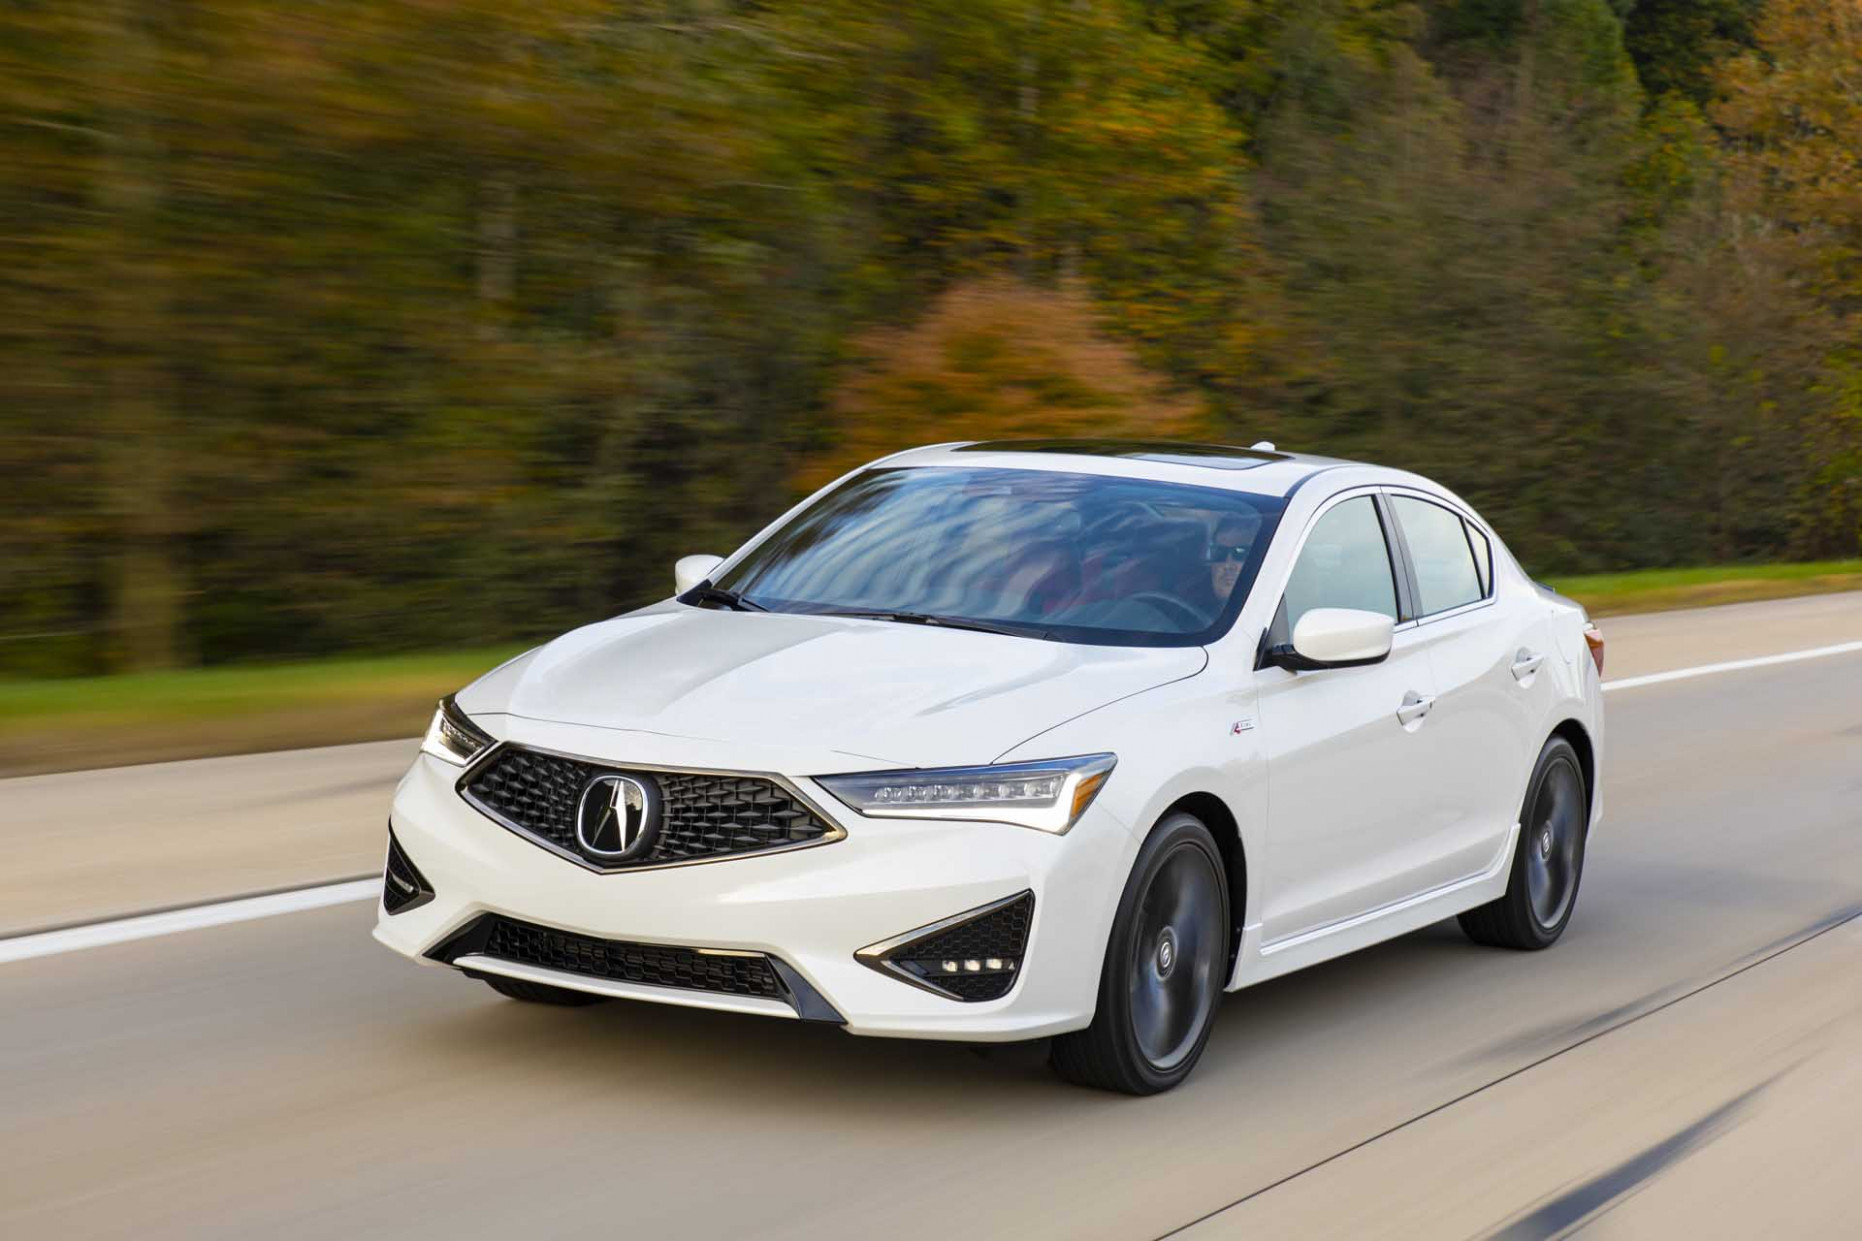 10 Acura ILX Review, Ratings, Specs, Prices, and Photos - The ..